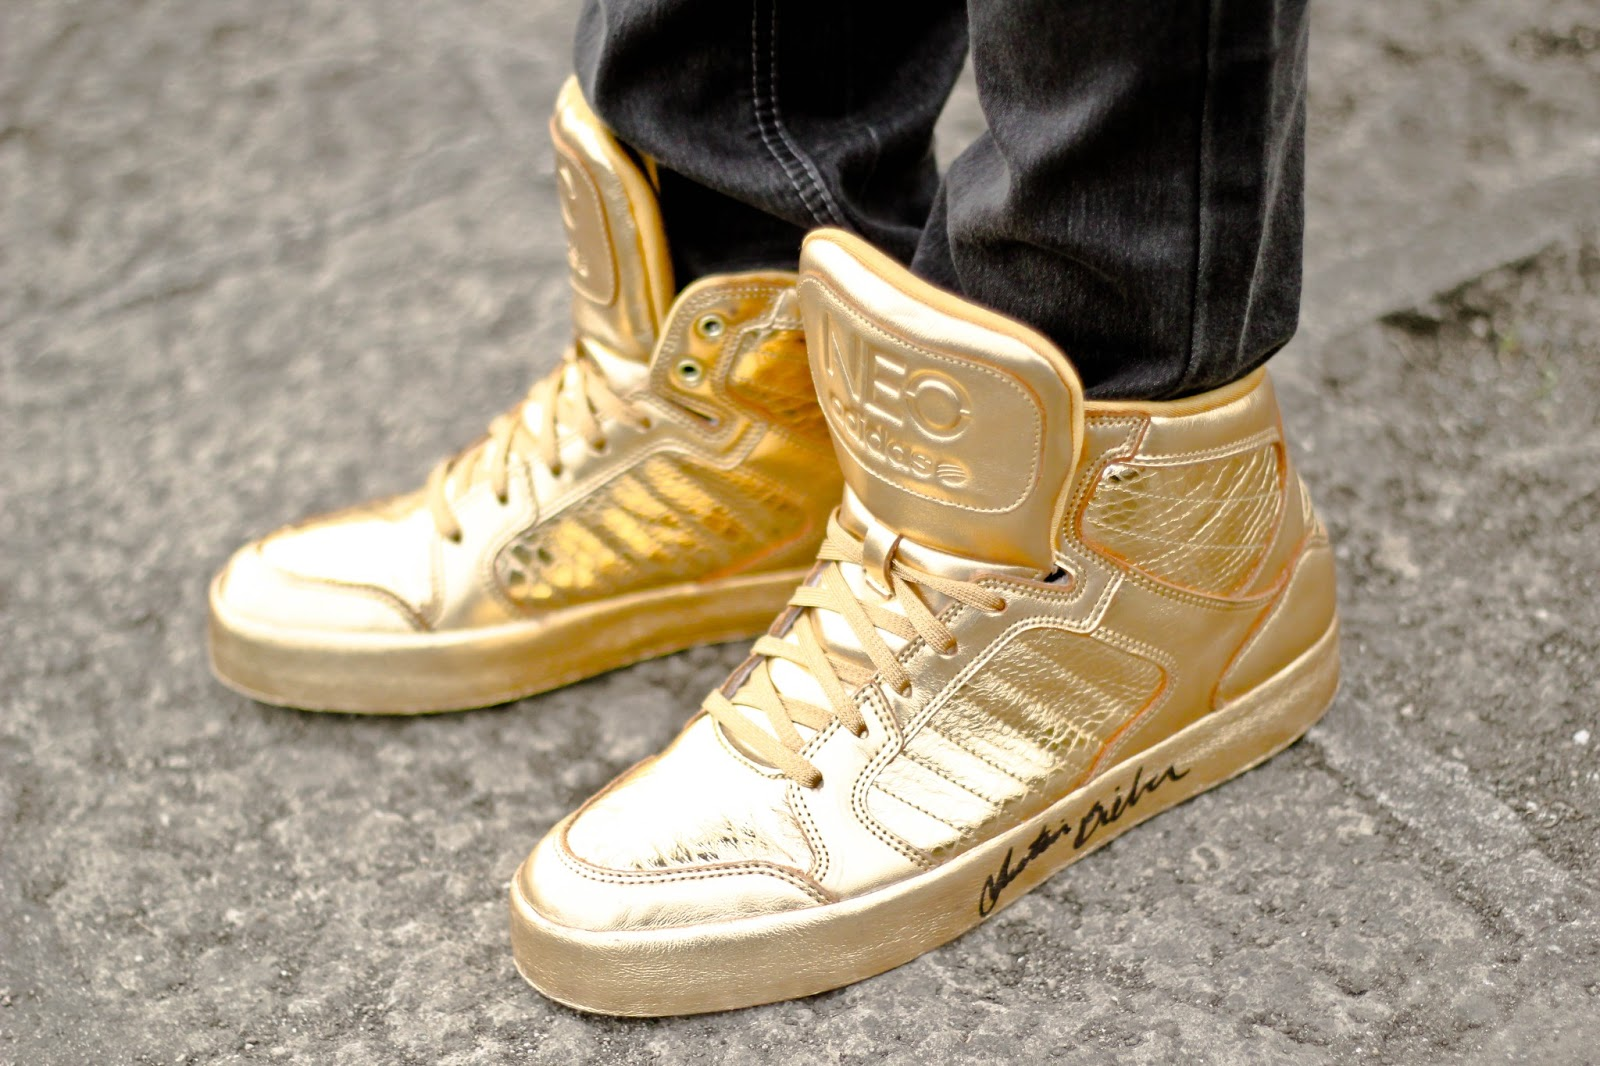 where can i buy adidas neo gold shoes